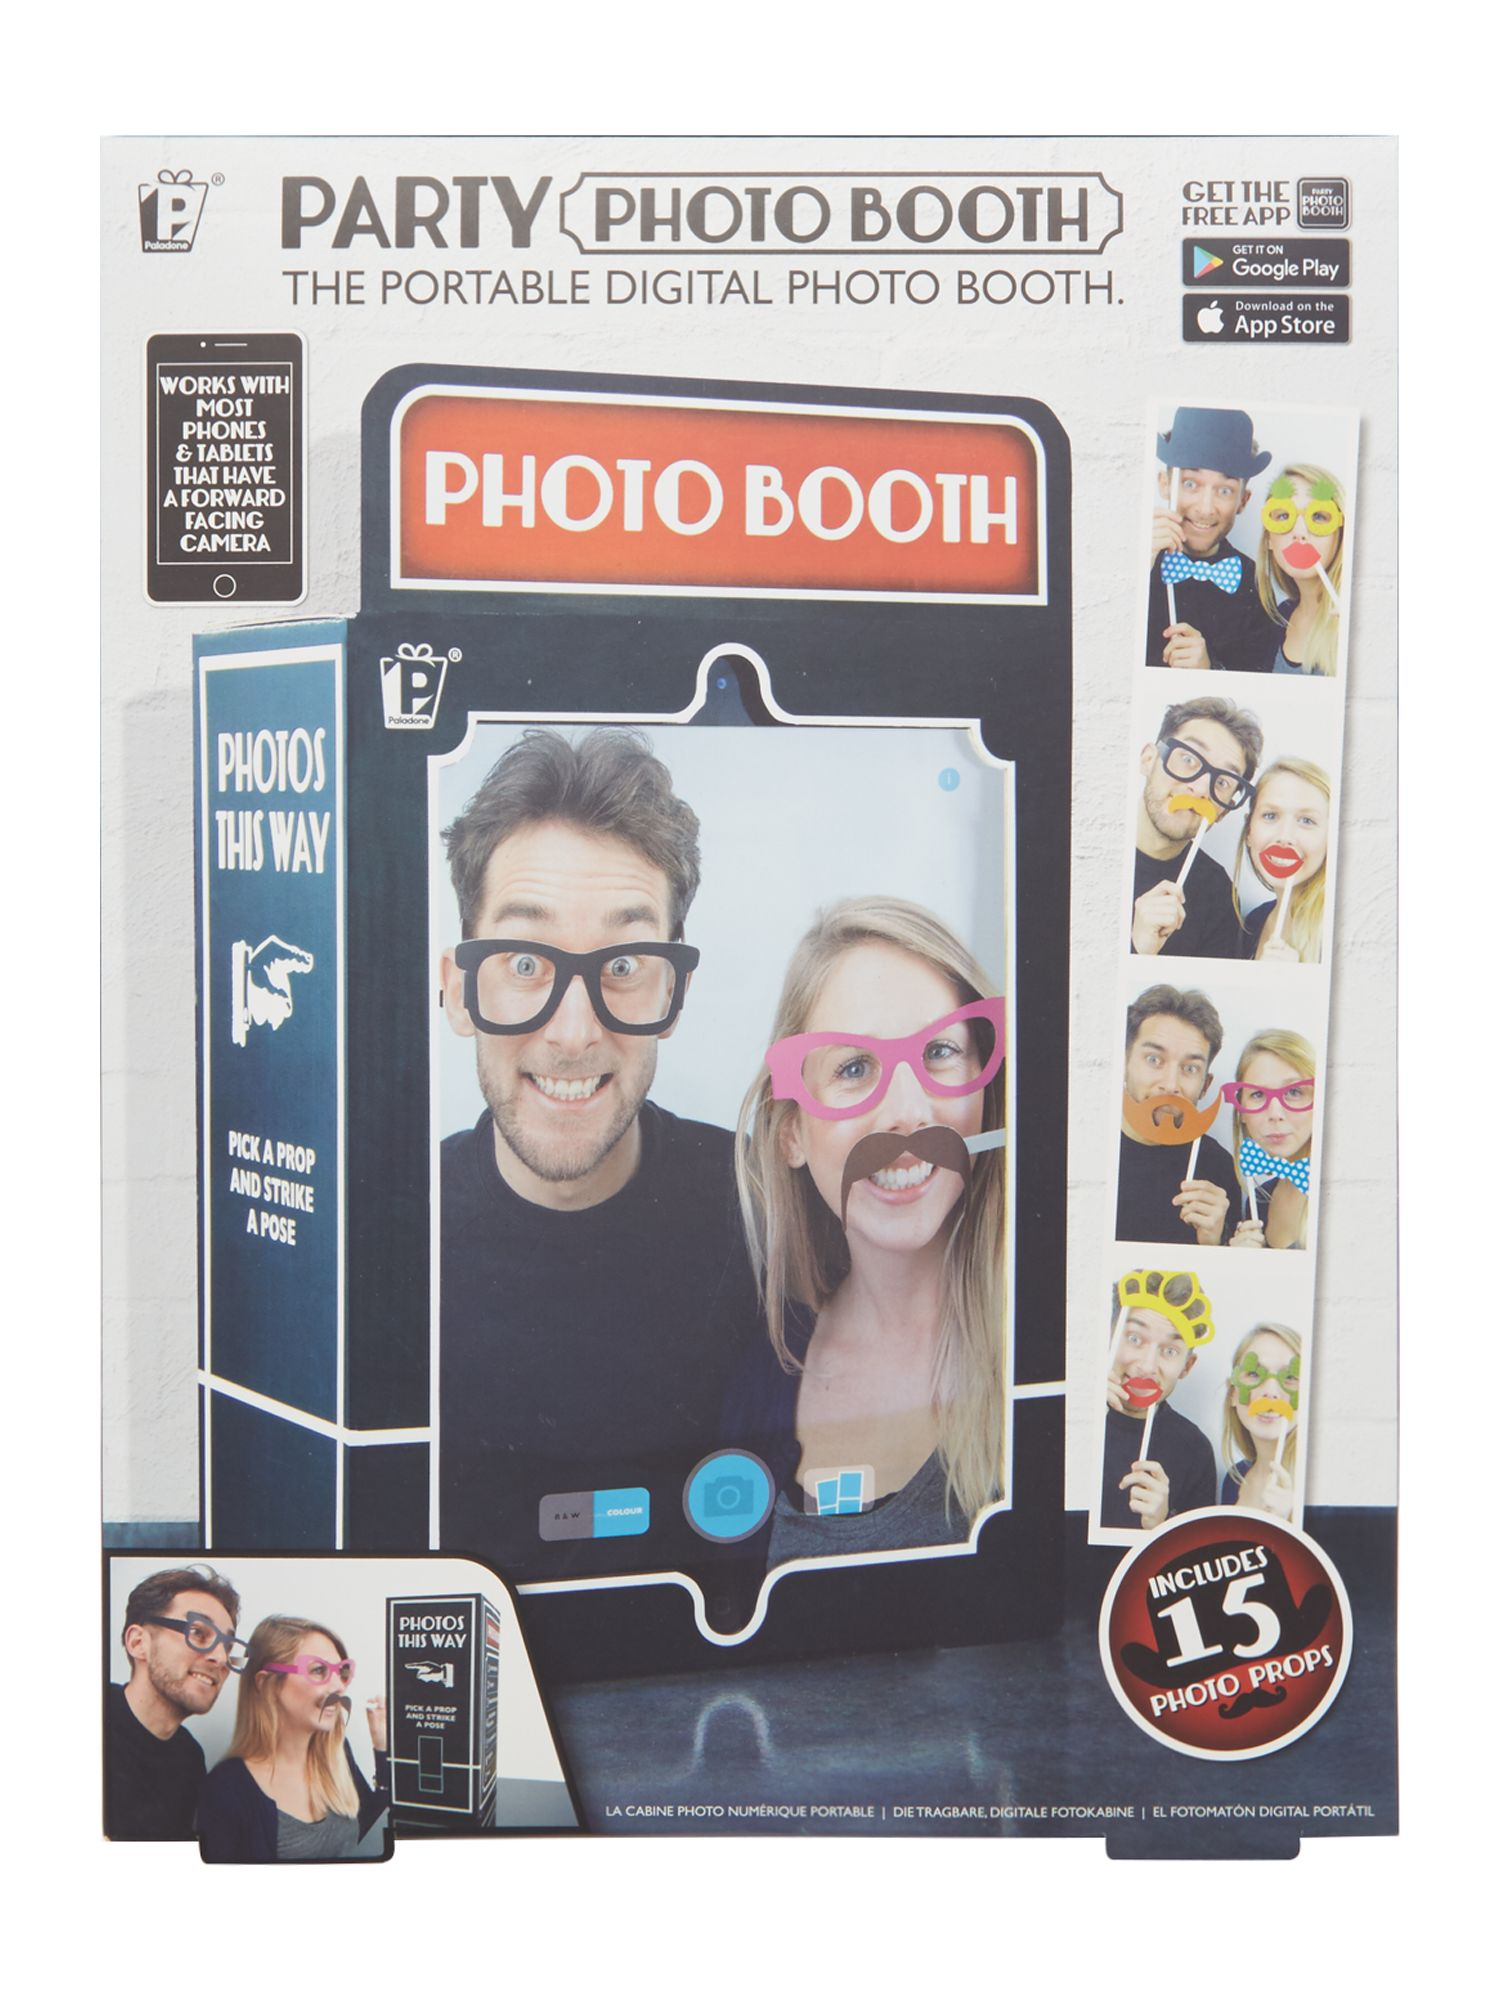 Star disco photo booth Photo Booth London Photo Booth Hire London - m